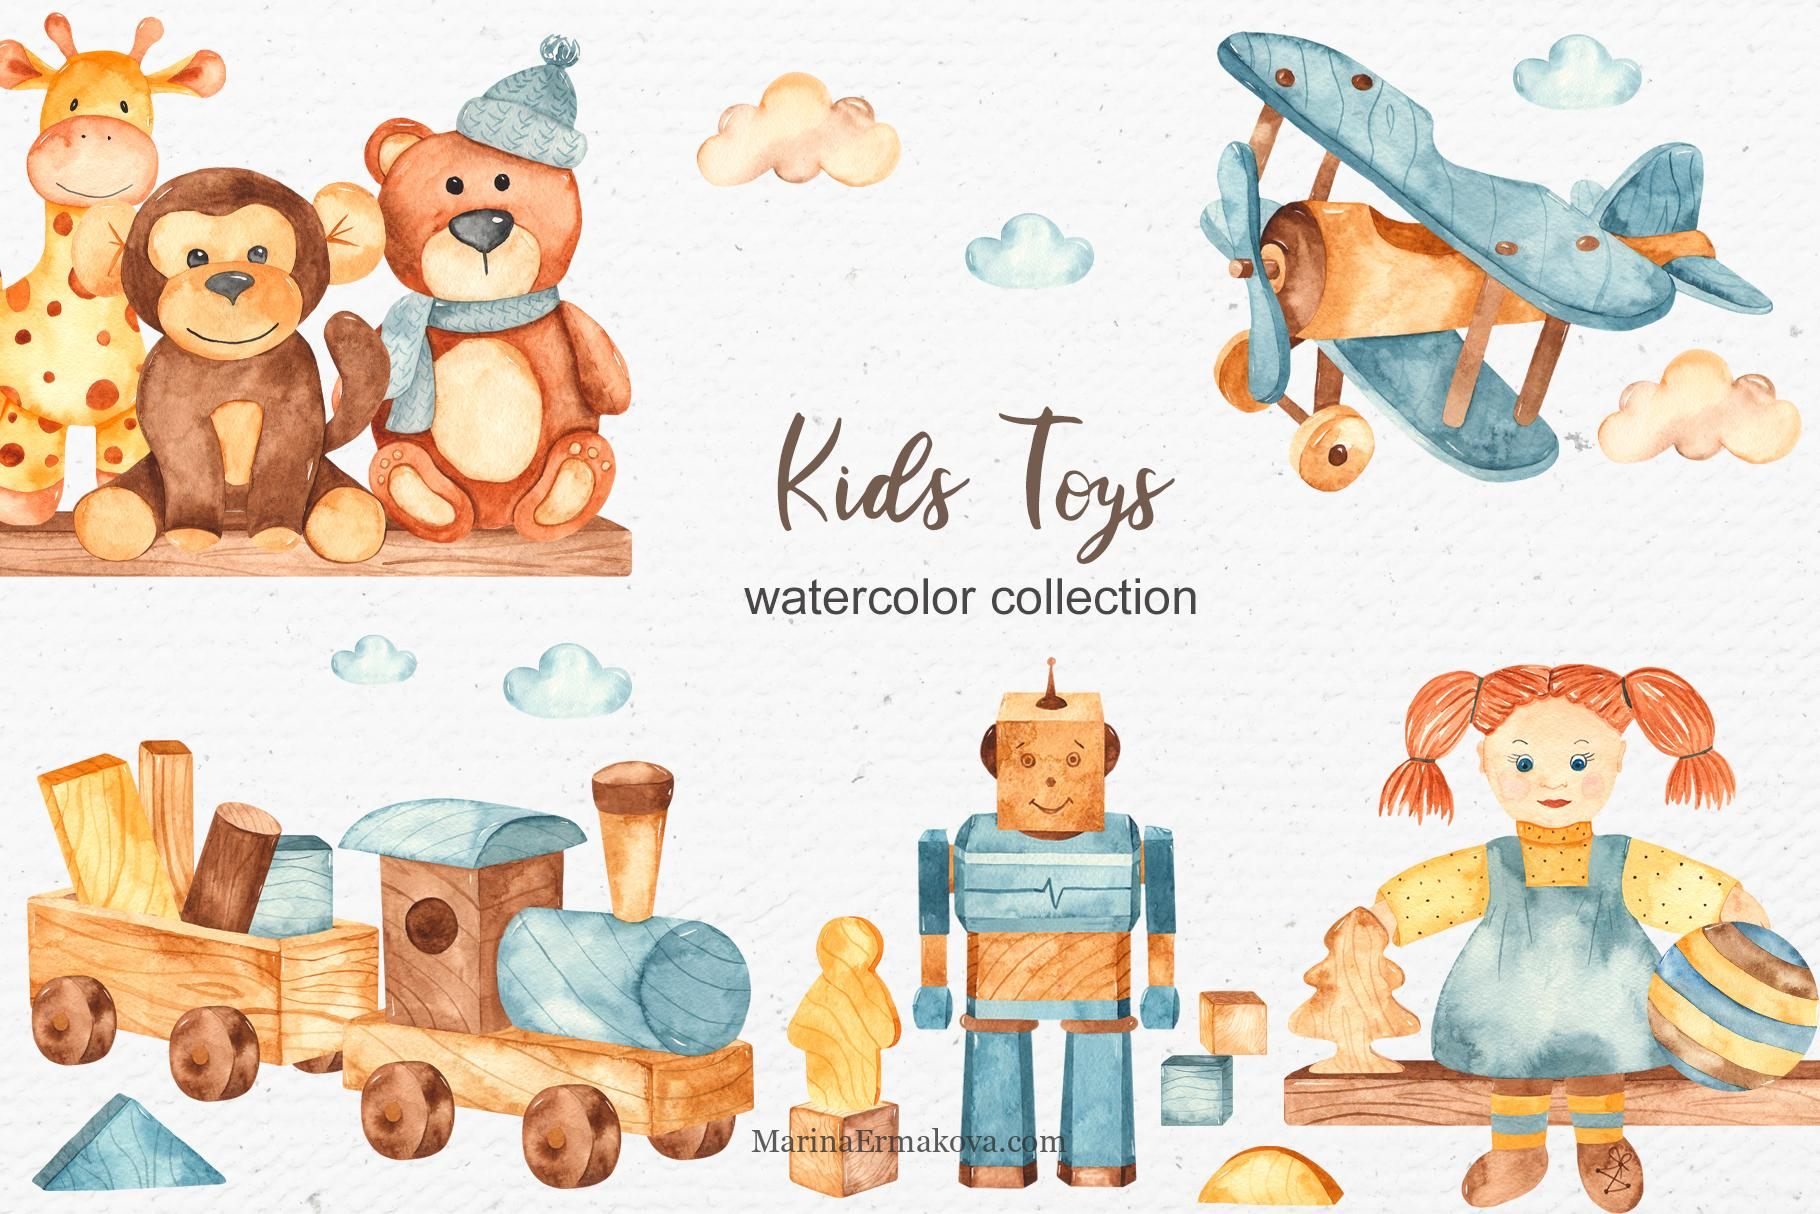 Kids toys watercolor collection